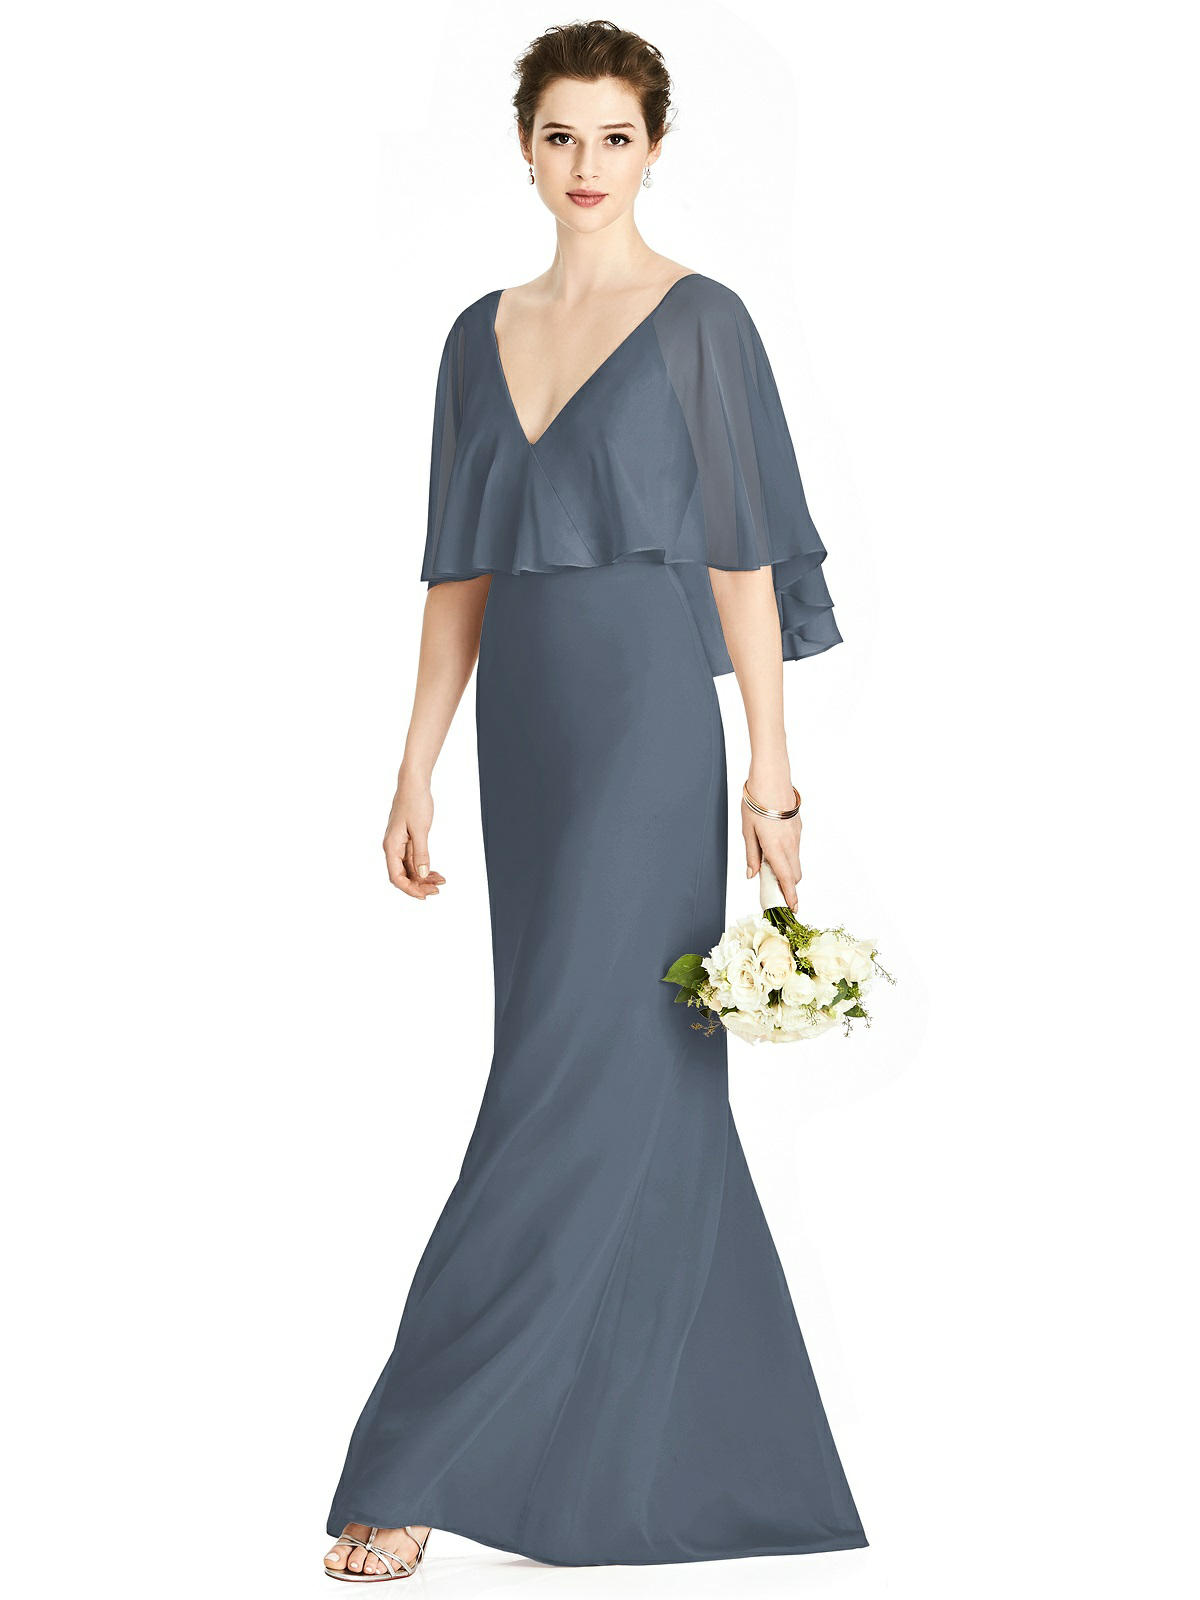 bridesmaid-dress-that-covers-arms